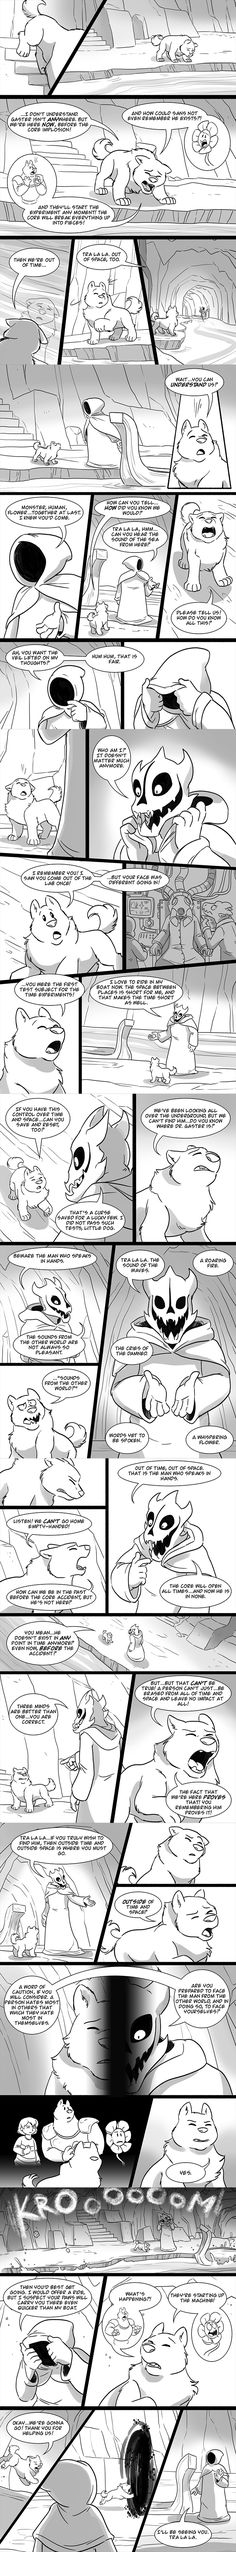 e926 2016 absurd_res ambiguous_gender anthro boat canine comic eyes_closed feral flora_fauna flower flowey_the_flower gaster_blaster greatest_dog hi_res hood human humanoid inner_monologue lynxgriffin male mammal plant protagonist_(undertale) river_person_(undertale) skull speech_bubble text ultradog_(undertale) underground undertale vehicle video_games water